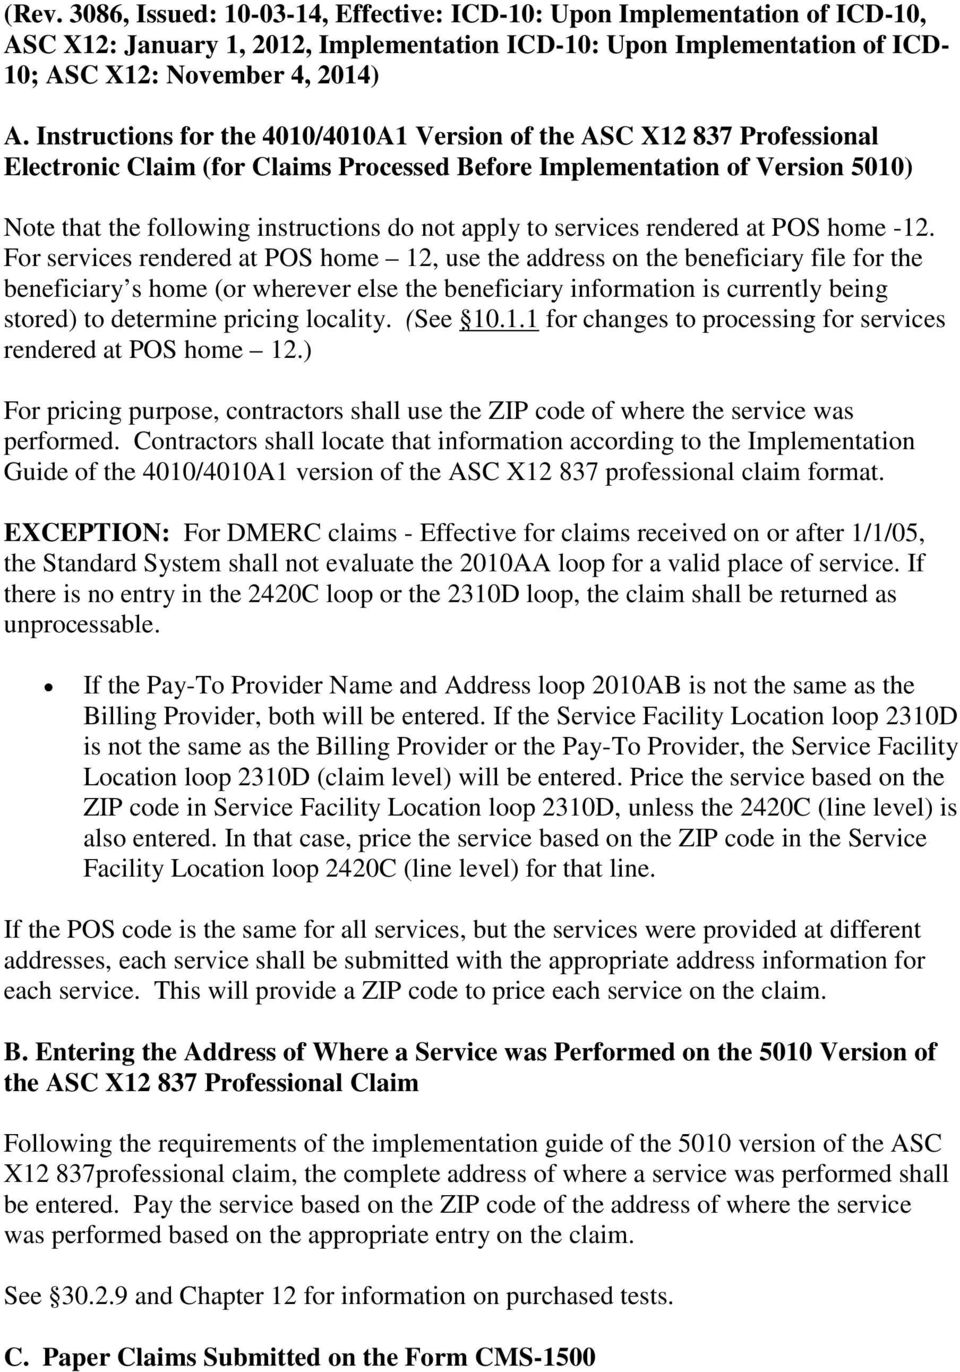 apply to services rendered at POS home -12. 20 Note that for claims  processed ...